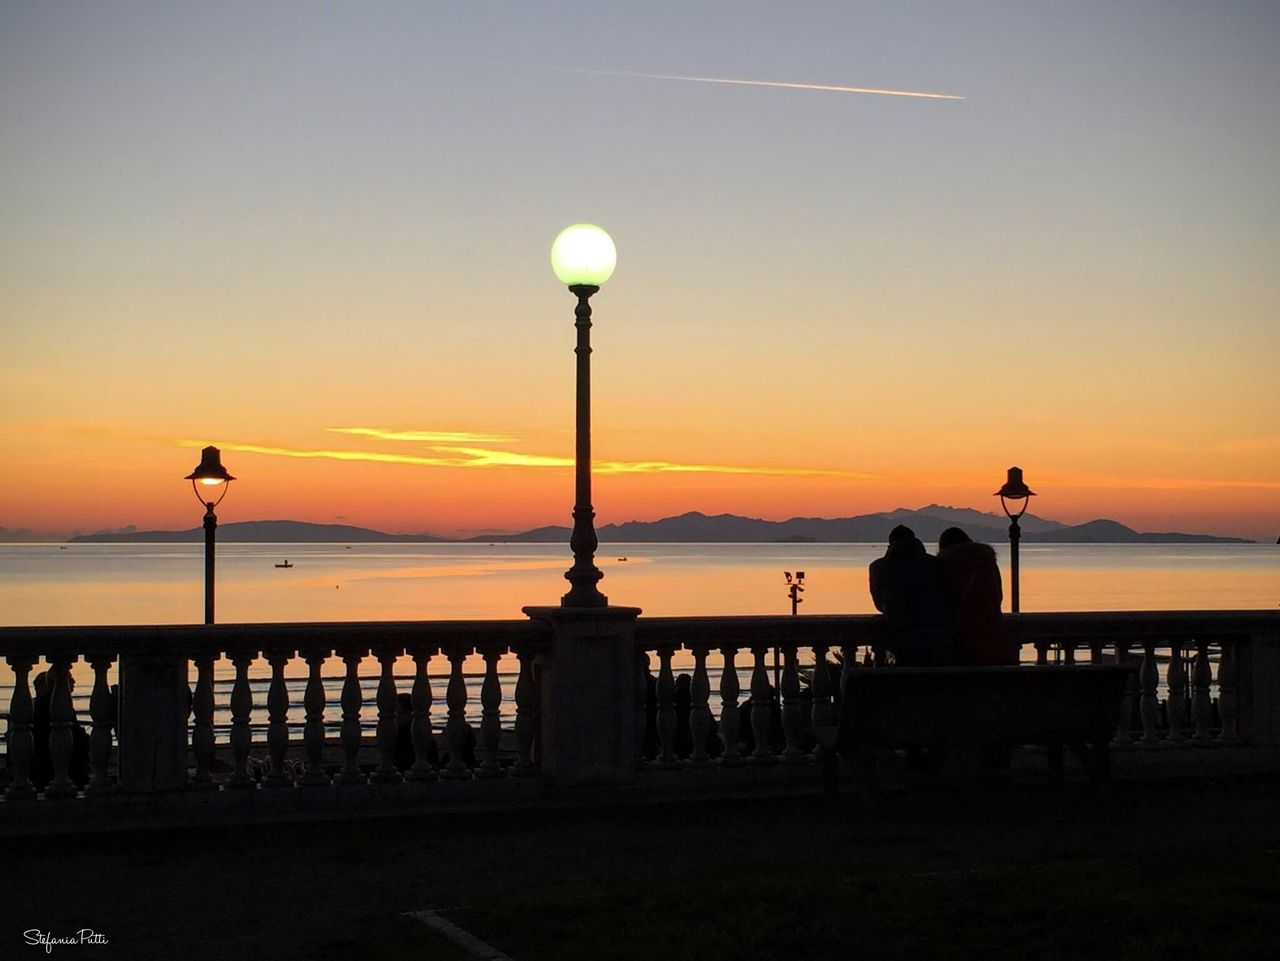 sunset, sea, silhouette, water, railing, sky, nature, beauty in nature, scenics, outdoors, leisure activity, real people, horizon over water, photographing, photography themes, sun, two people, men, beach, lifestyles, vacations, women, togetherness, camera - photographic equipment, coin-operated binoculars, day, people